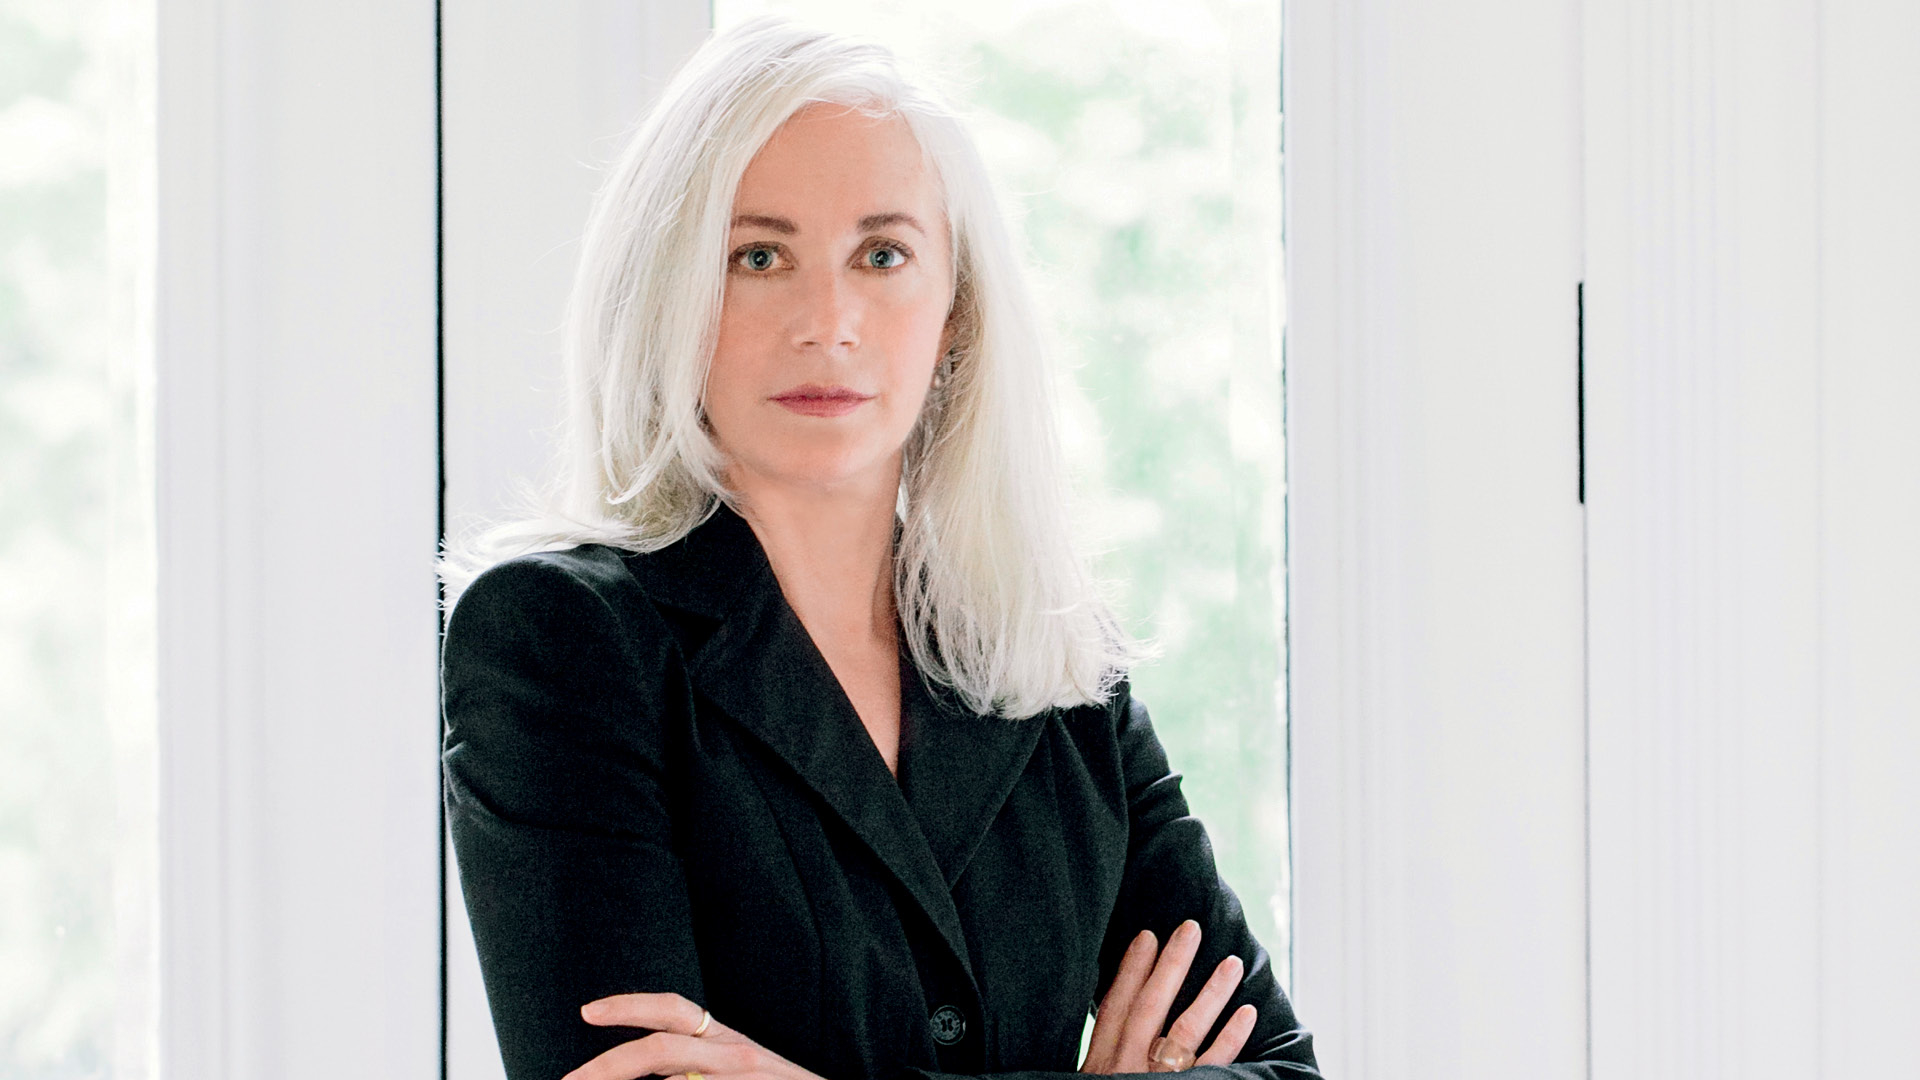 A Conversation With UBS Art Collection's Global Head On The Importance Of Corporate Art Collecting